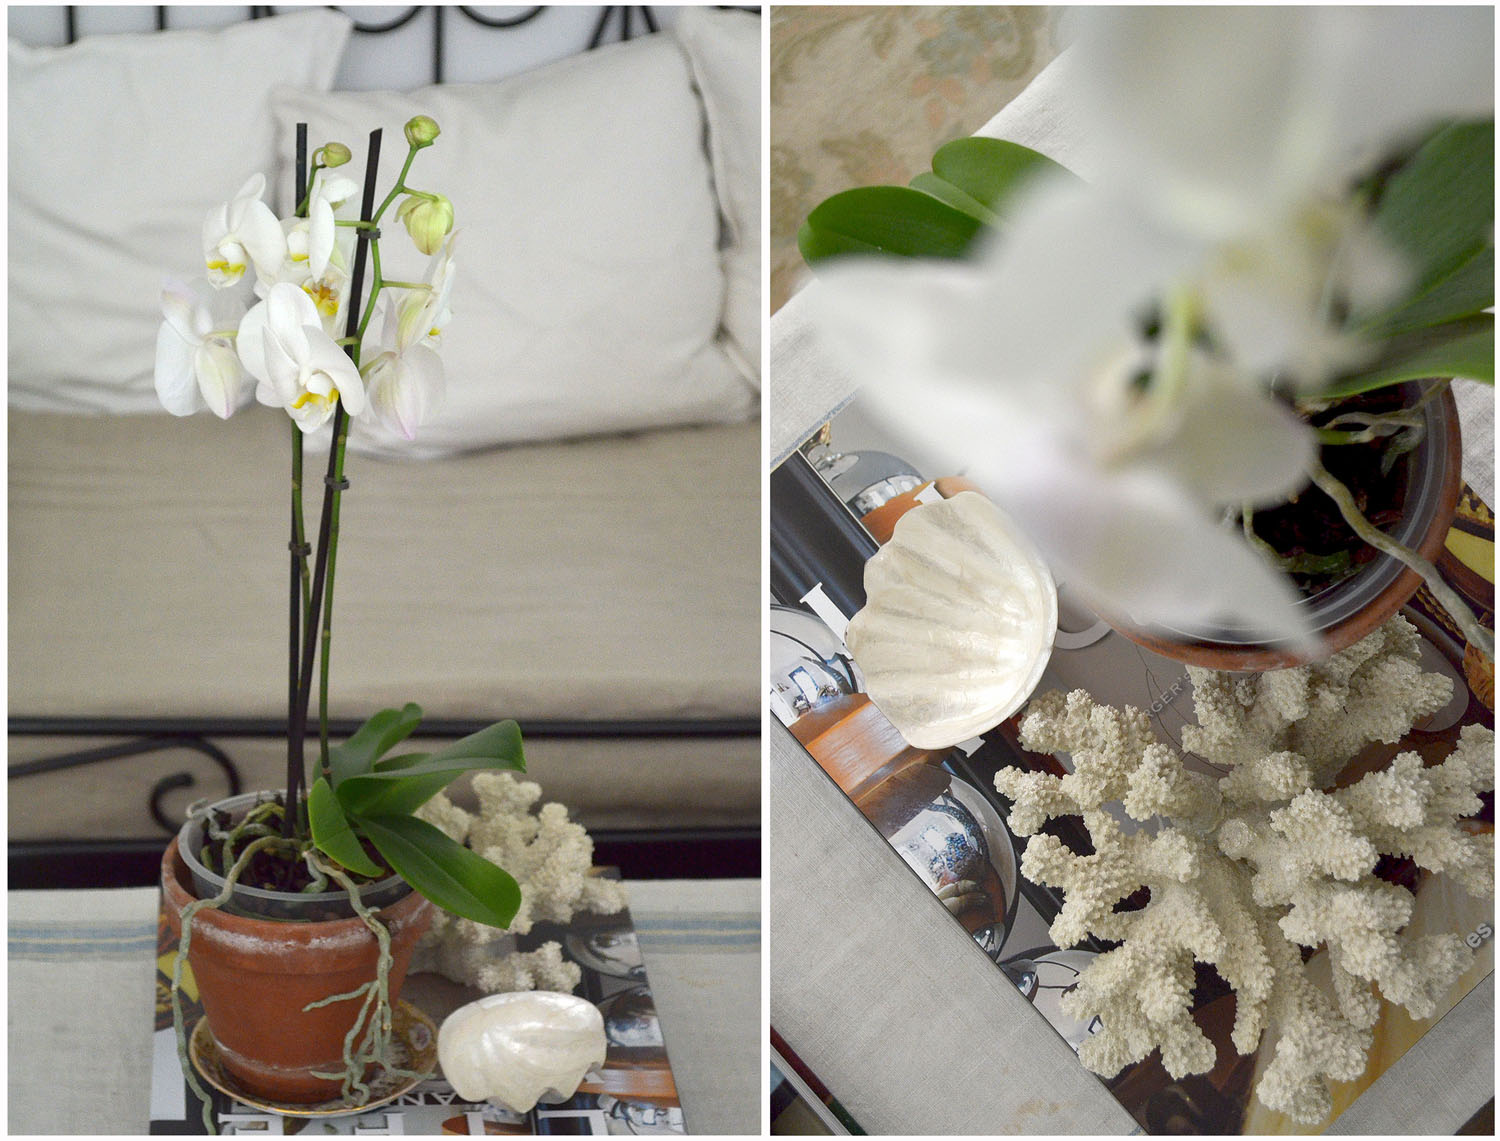 White Orchids at home.jpg